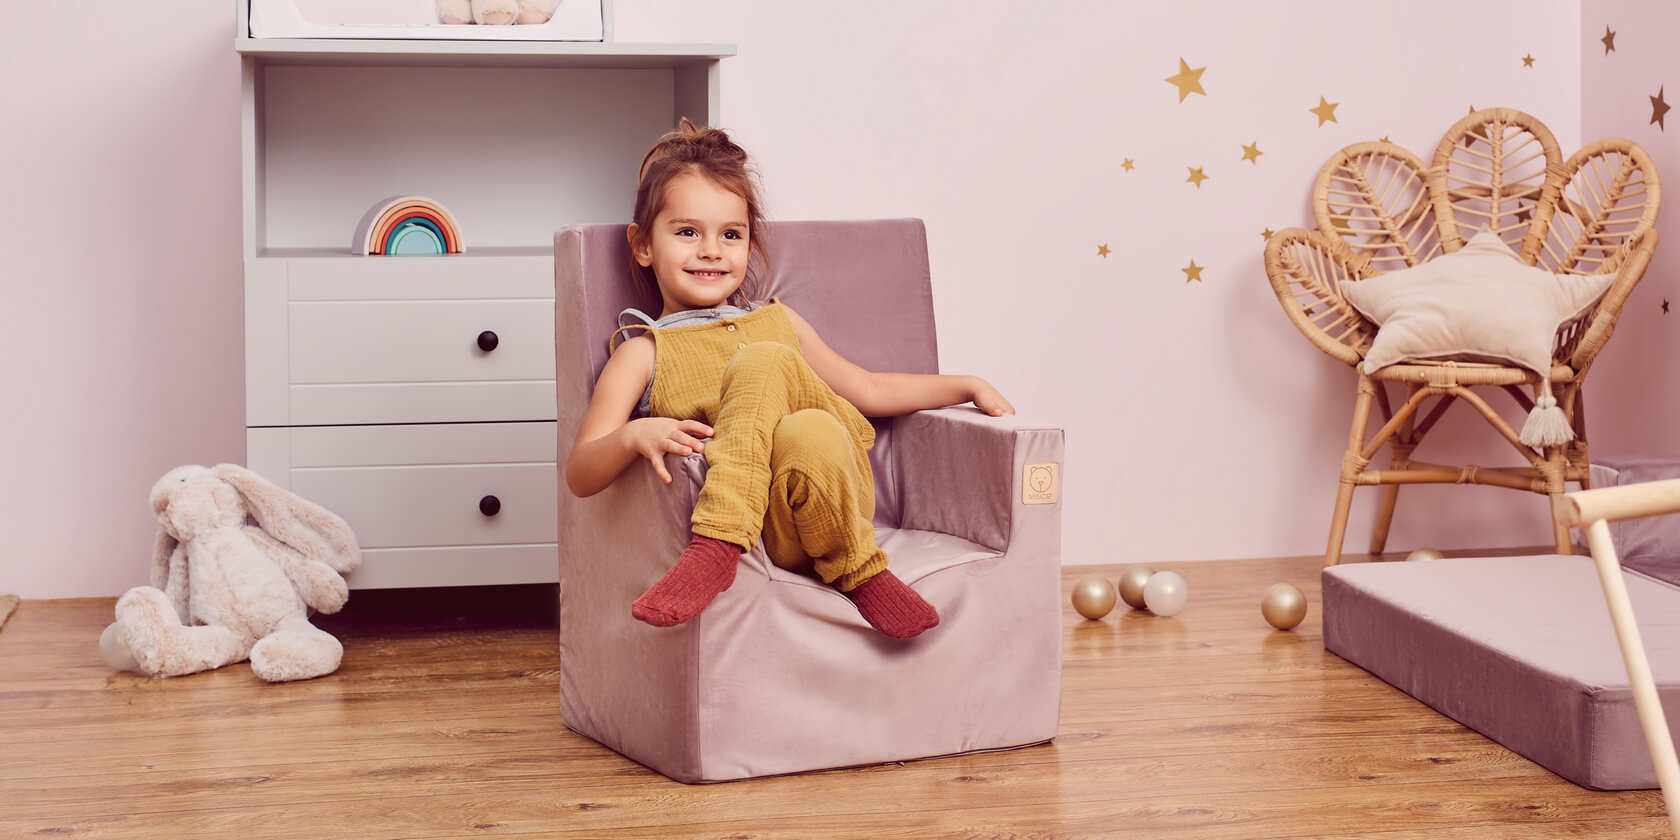 How to choose a foam chair for a child?